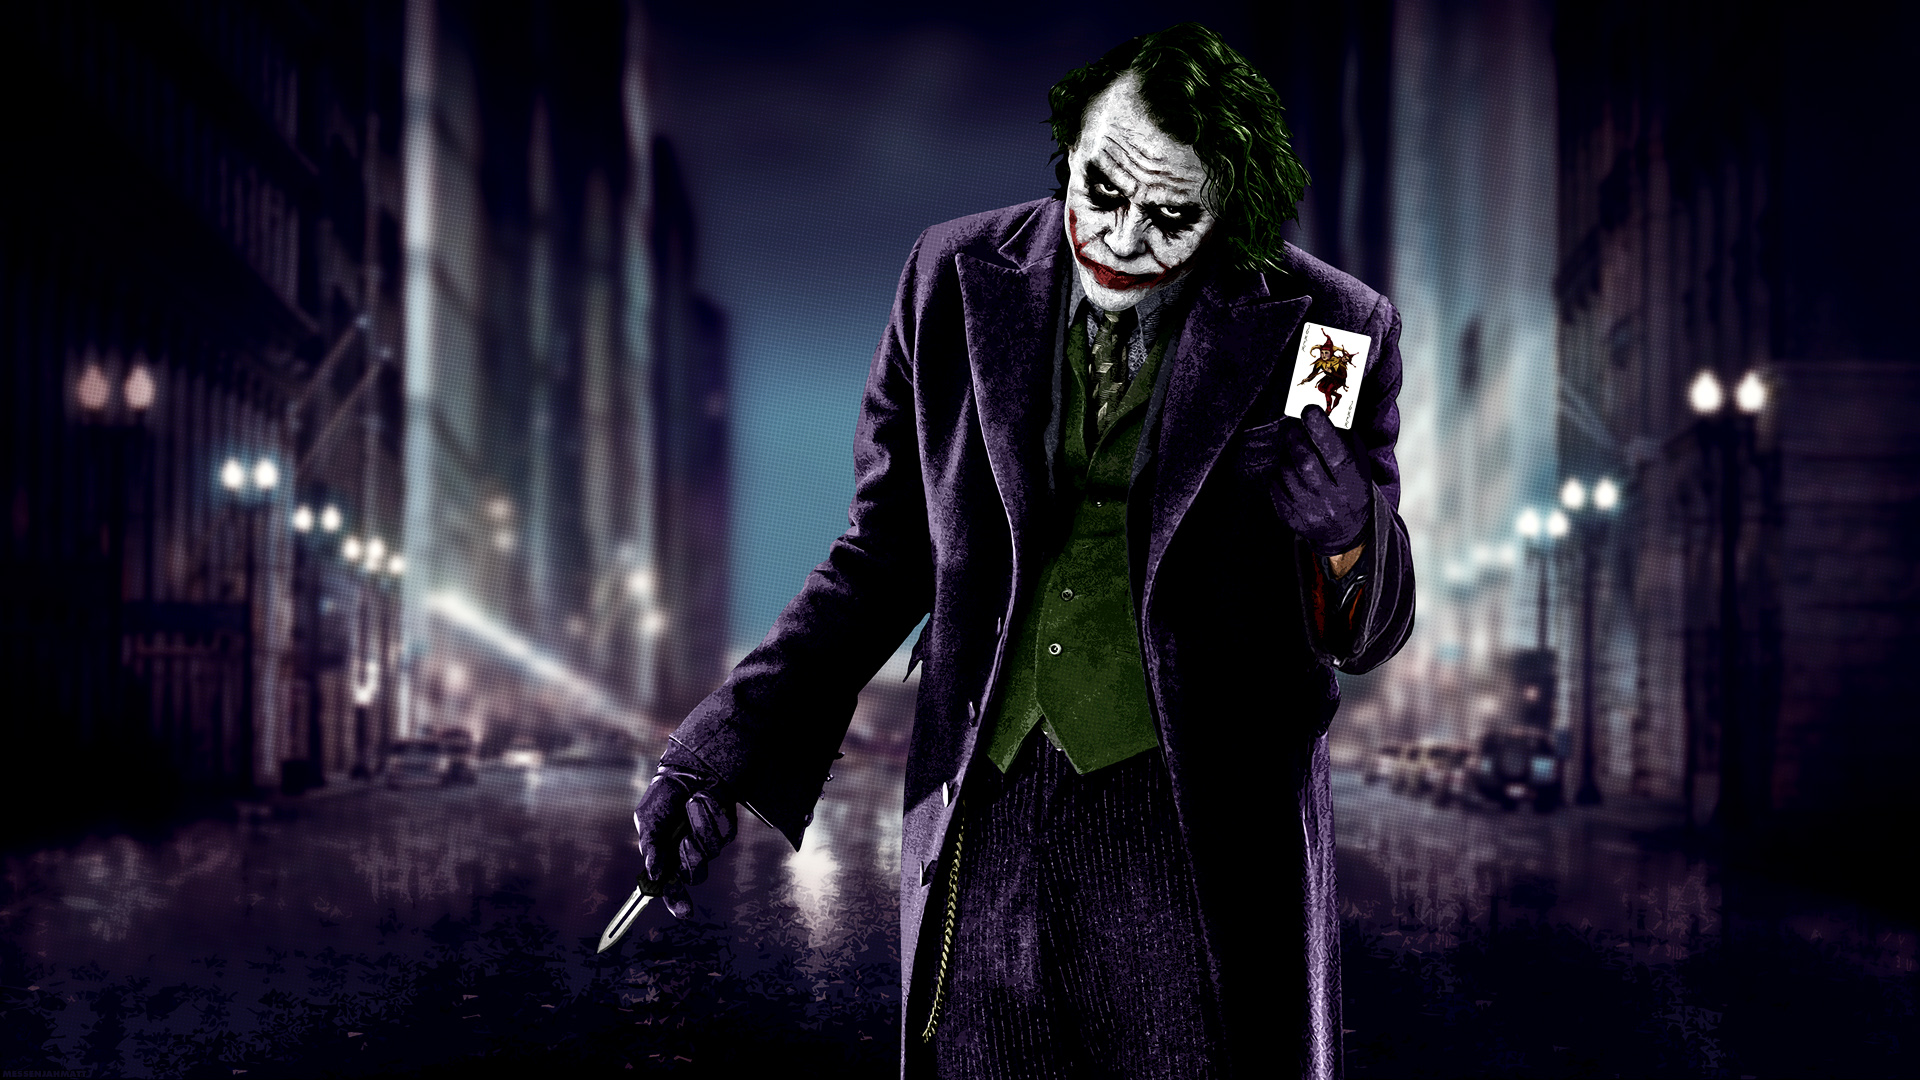 Joker Wallpaper Hd Wallpaper 1920x1080